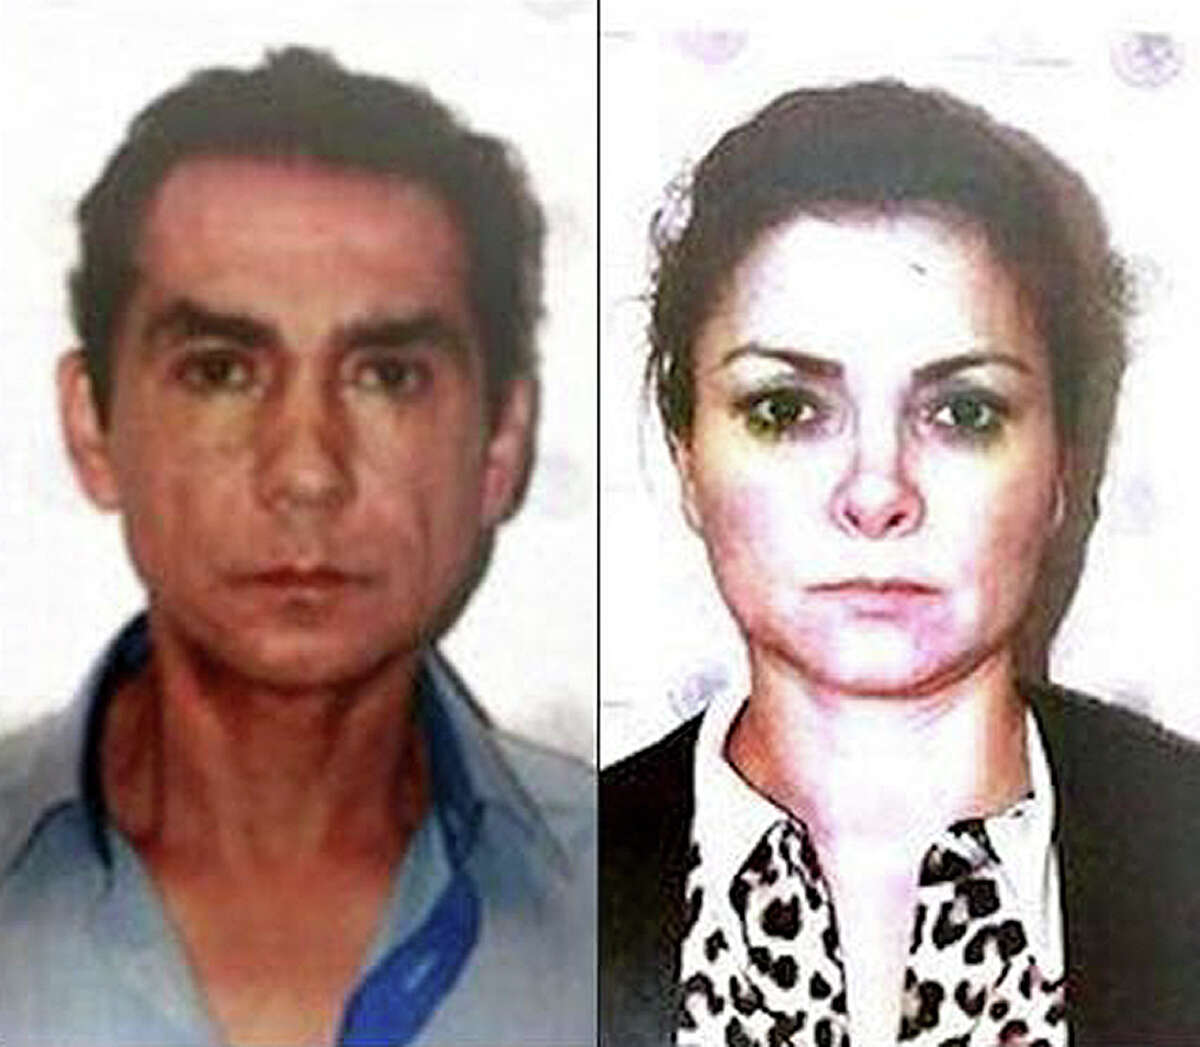 This two-image composite released by Mexico's Attorney General's office (PGR) on Nov. 5, 2014 shows the former mayor of the town of Iguala, Jose Luis Abarca, left, and his wife, Maria de los Angeles Pineda, after their arrest in Mexico City. Hiding out in a gritty slum, this politically connected couple believed to have ordered an attack that killed six people and left 43 students missing in September tried to lie low as dozens of federal agents staked out their suspected hiding spots. (AP Photo/PGR)